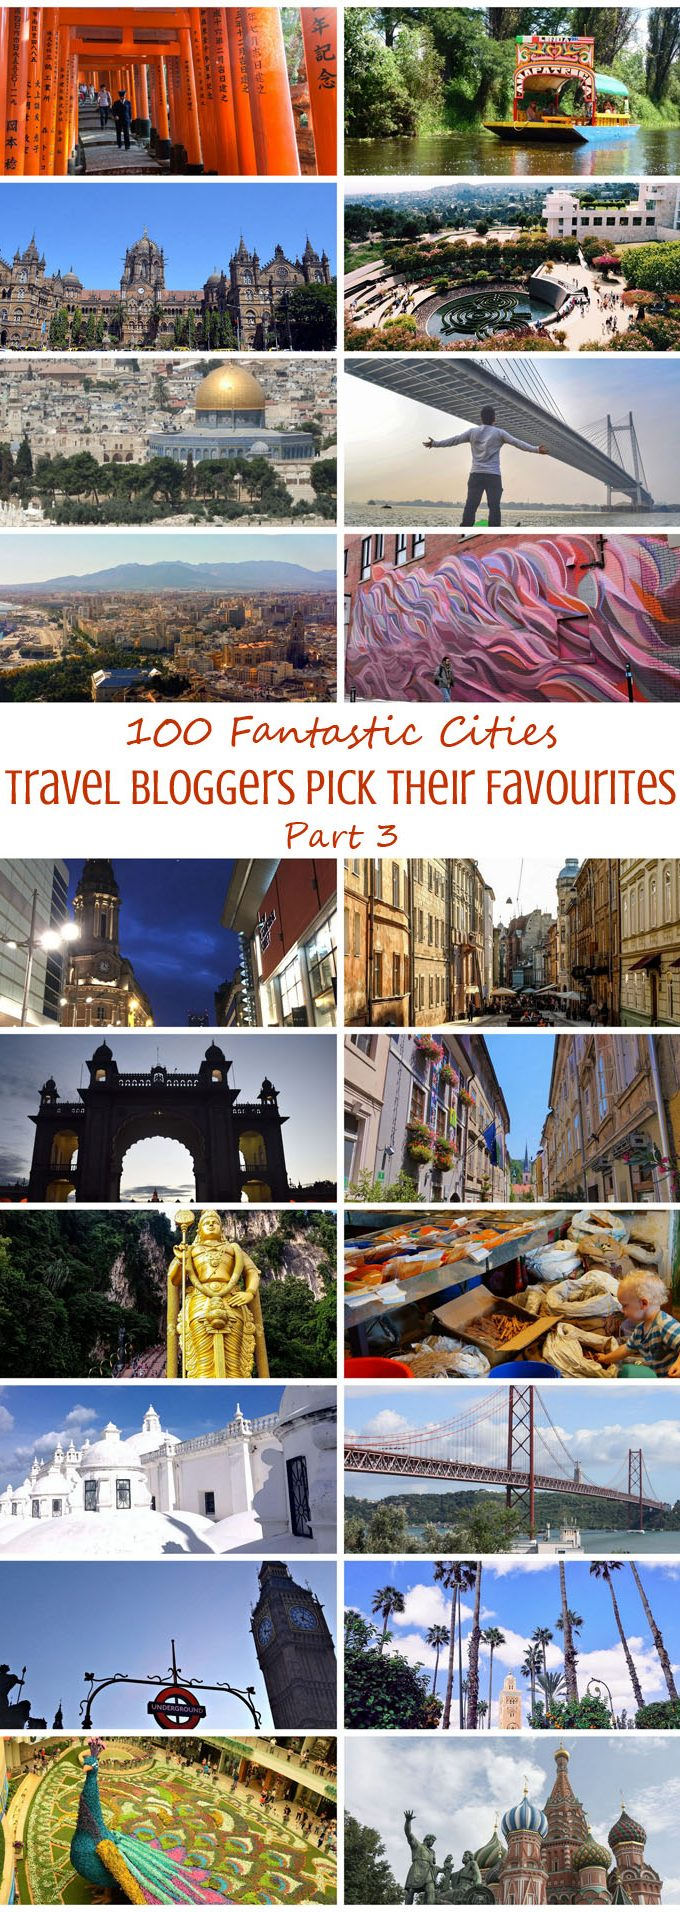 100 Fantastic Cities for City Breaks, as chosen by travel bloggers (part 3)